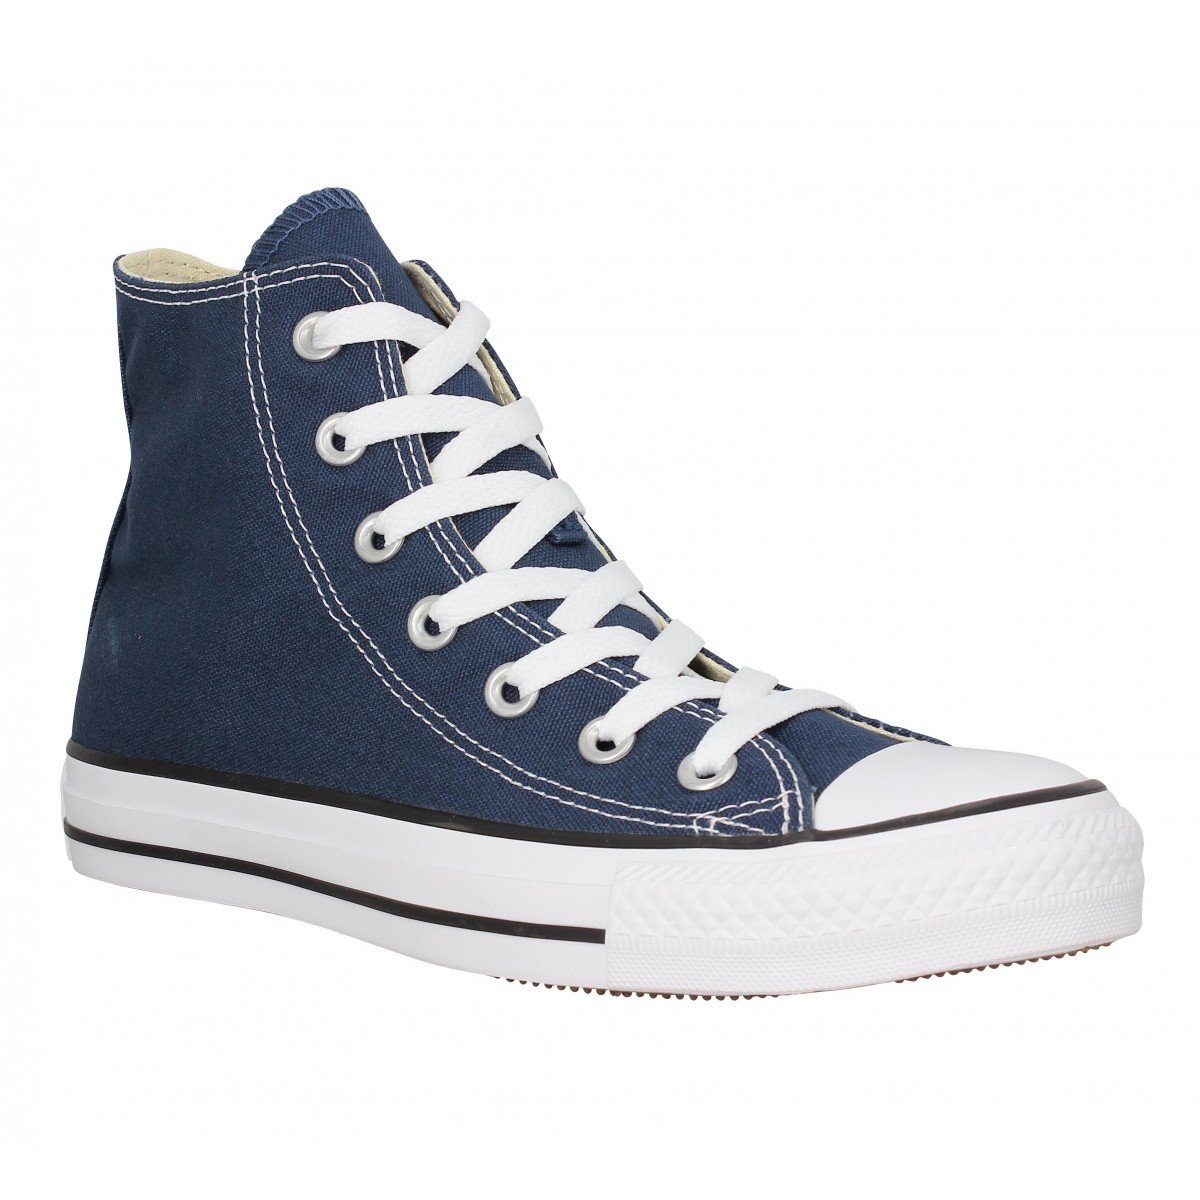 Converse 15860 Toile Femme Marine Fanny Chaussures